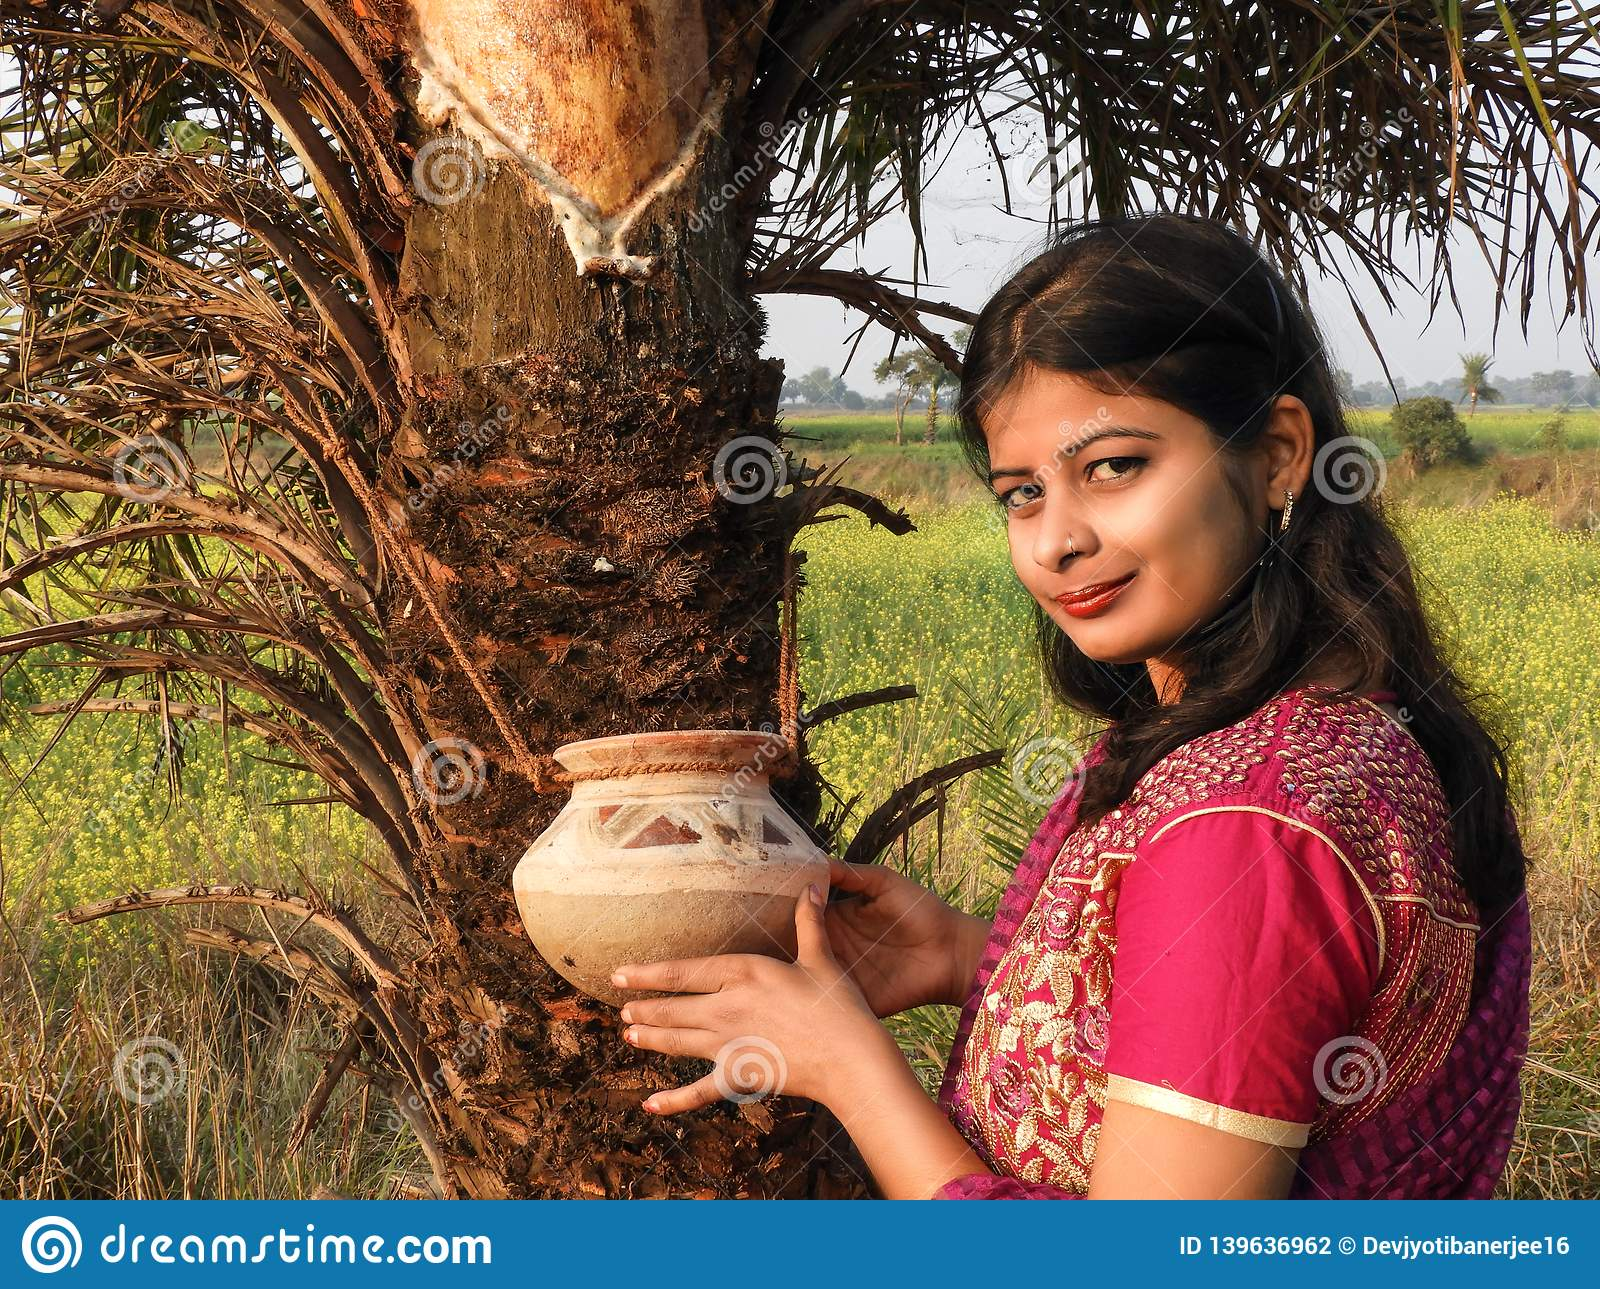 A village girl stood at the front of date tree, spring time